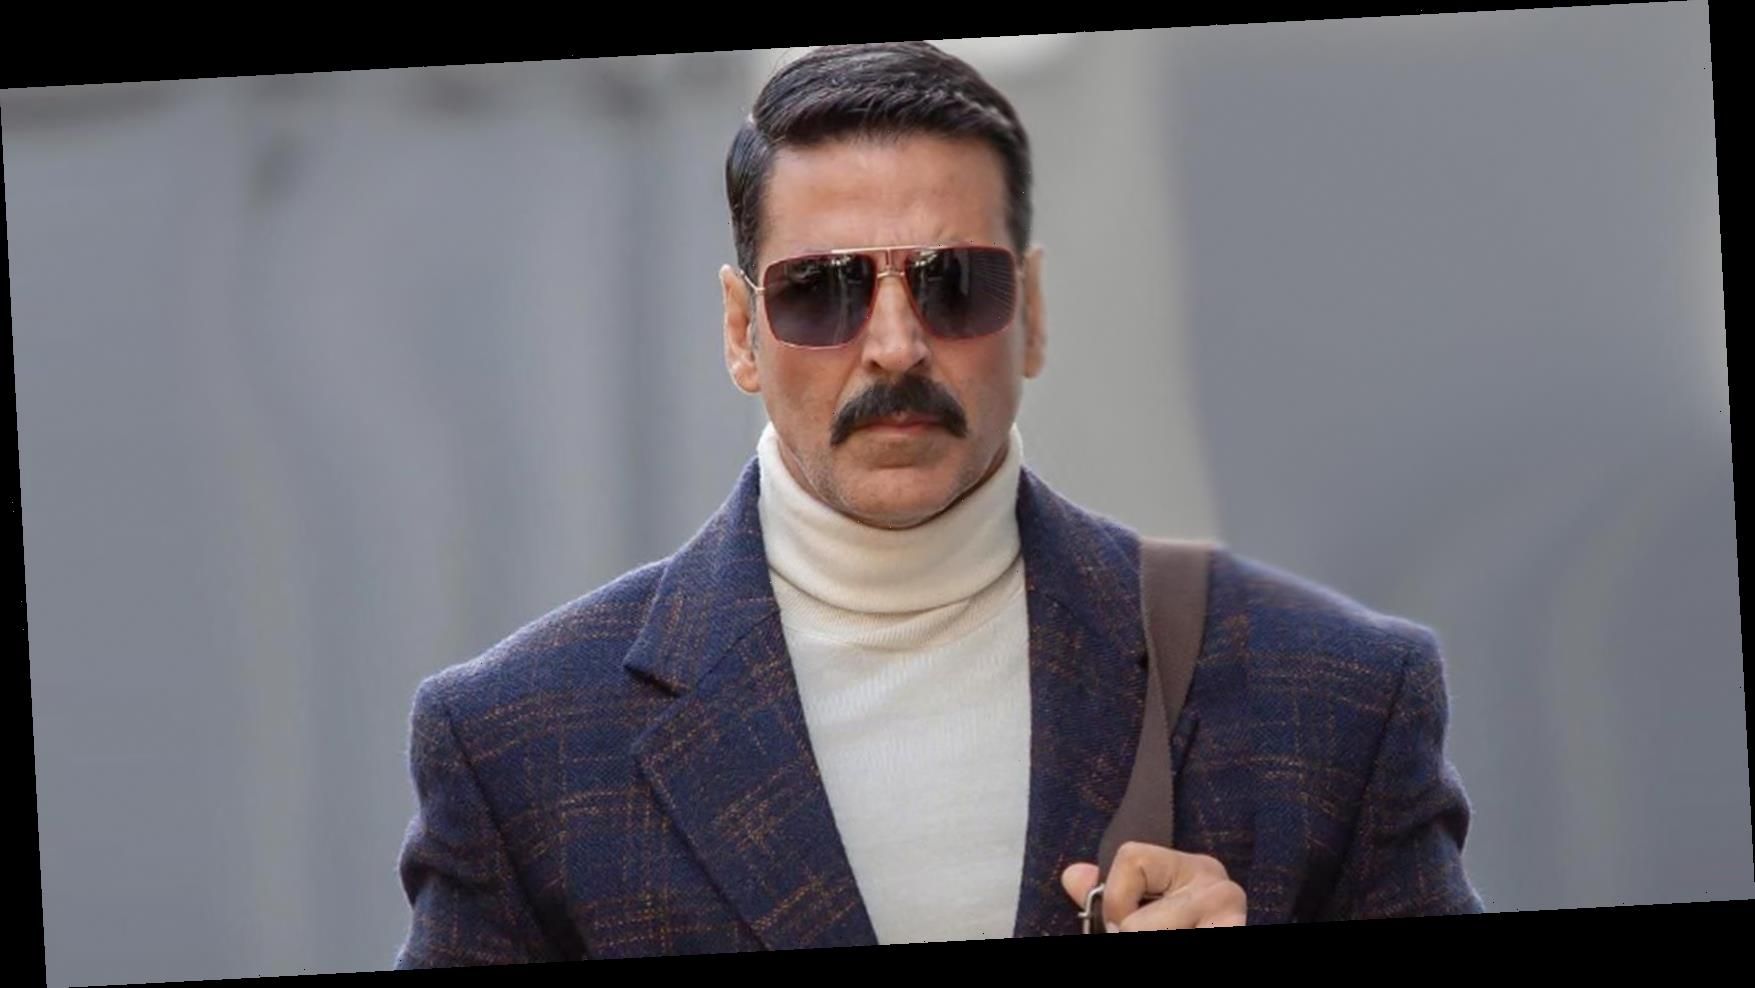 Akshay Kumar Became One Of The Highest-Paid Actors Ever, Here's How